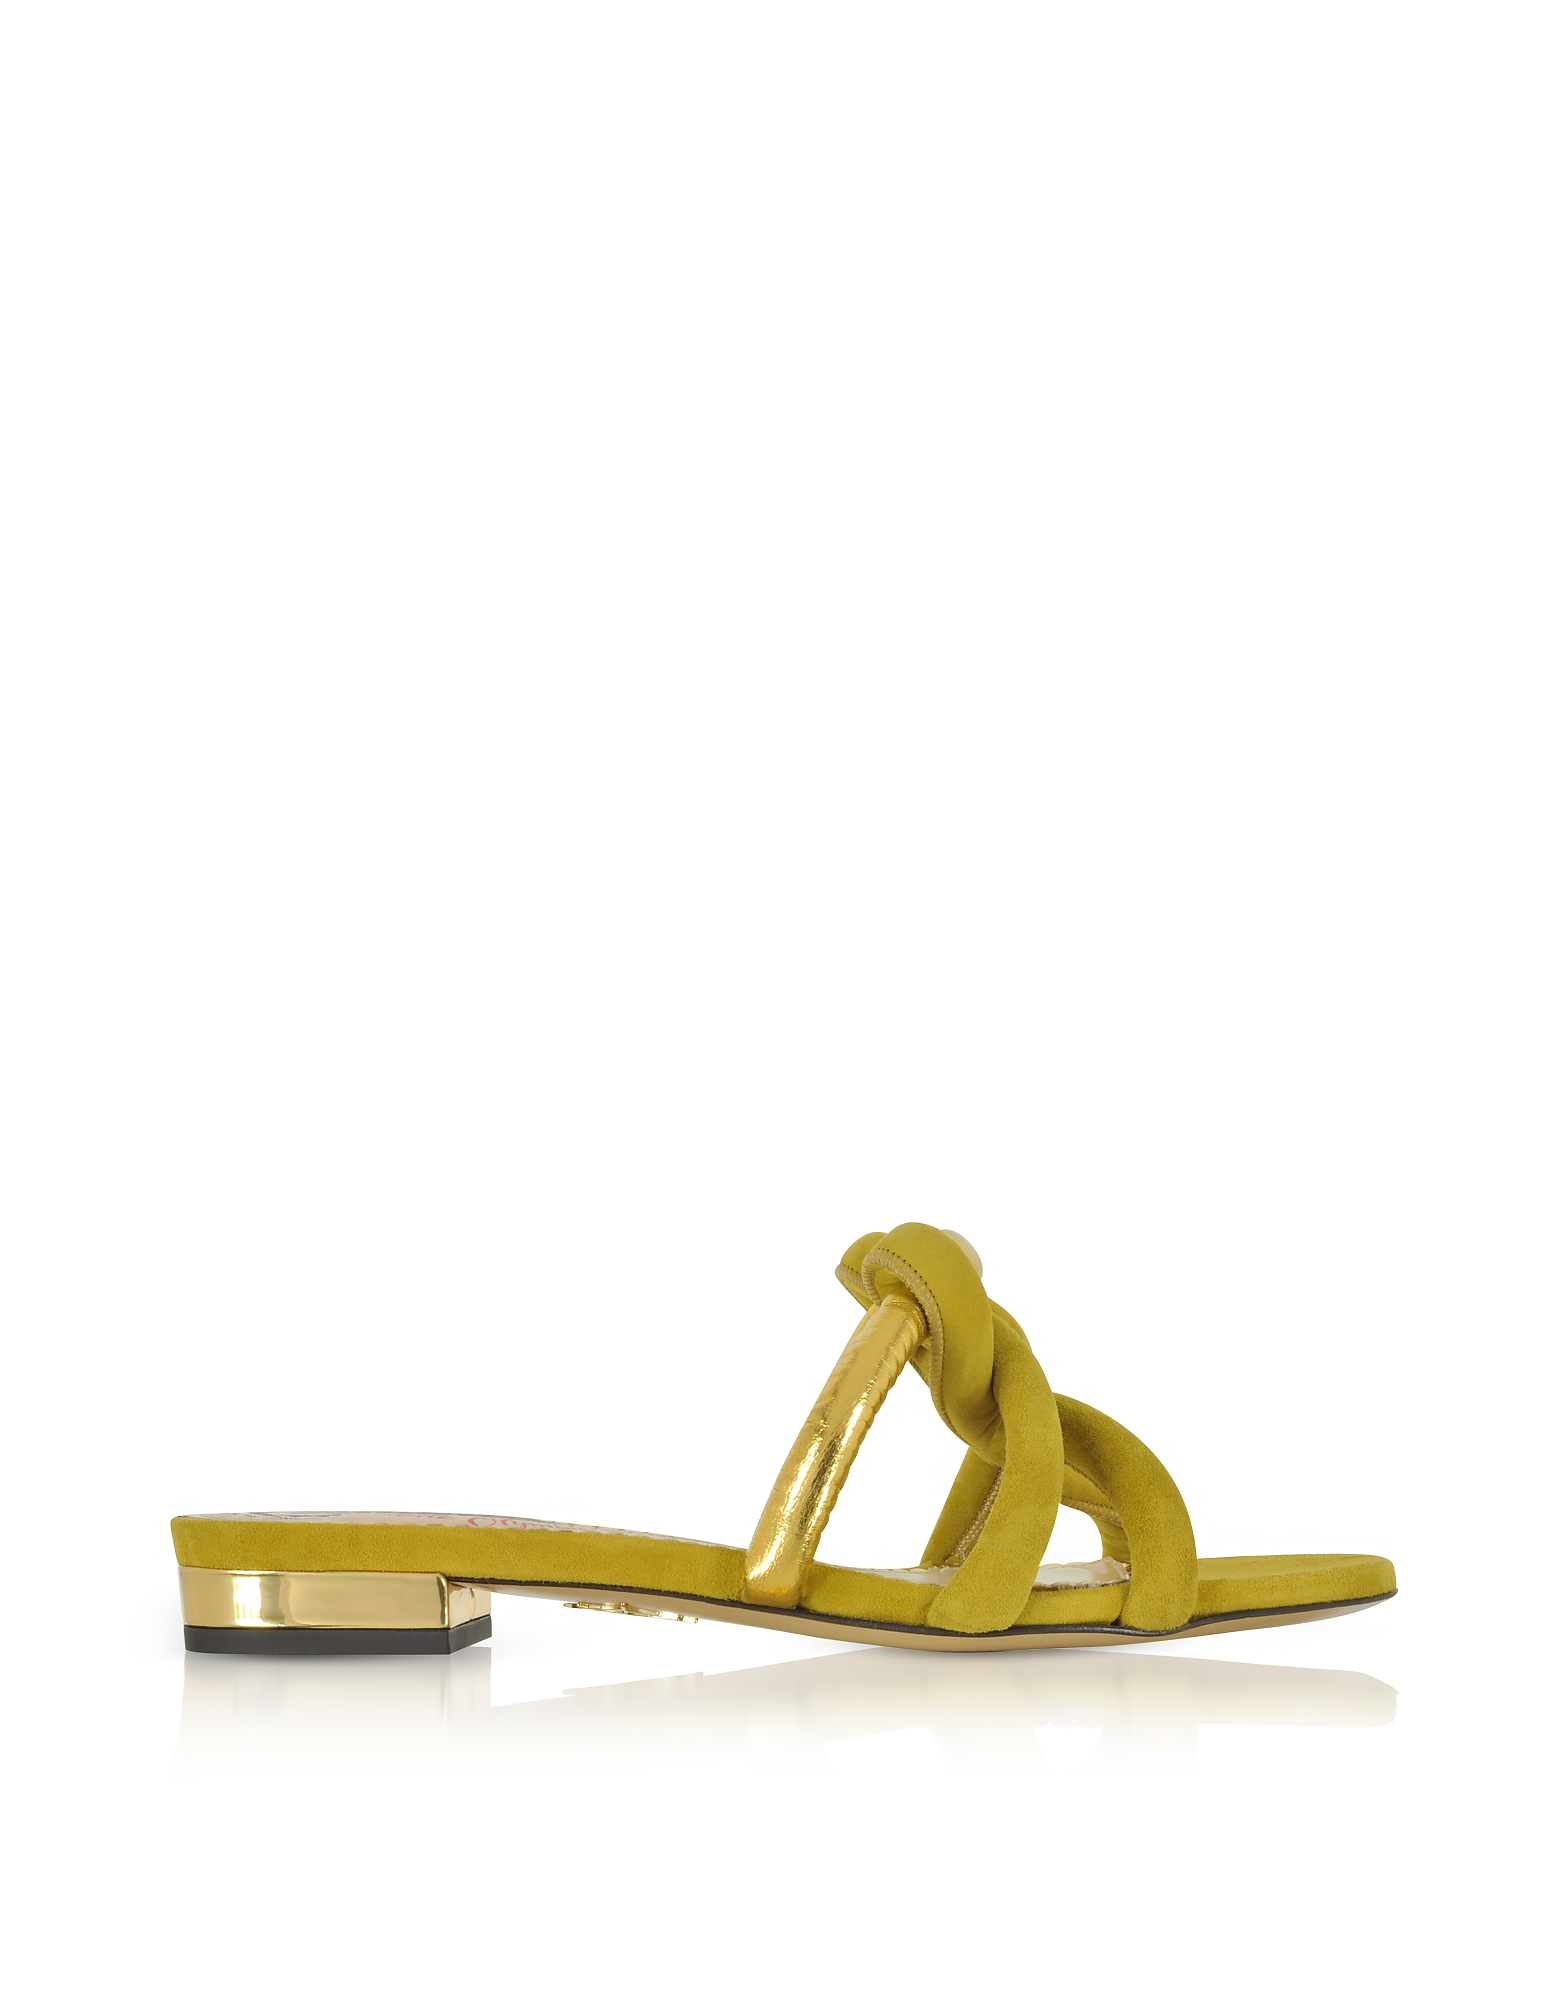 Charlotte Olympia Shoes, Thalia Olive Green Suede and Gold Metallic Leather Slide Sandals